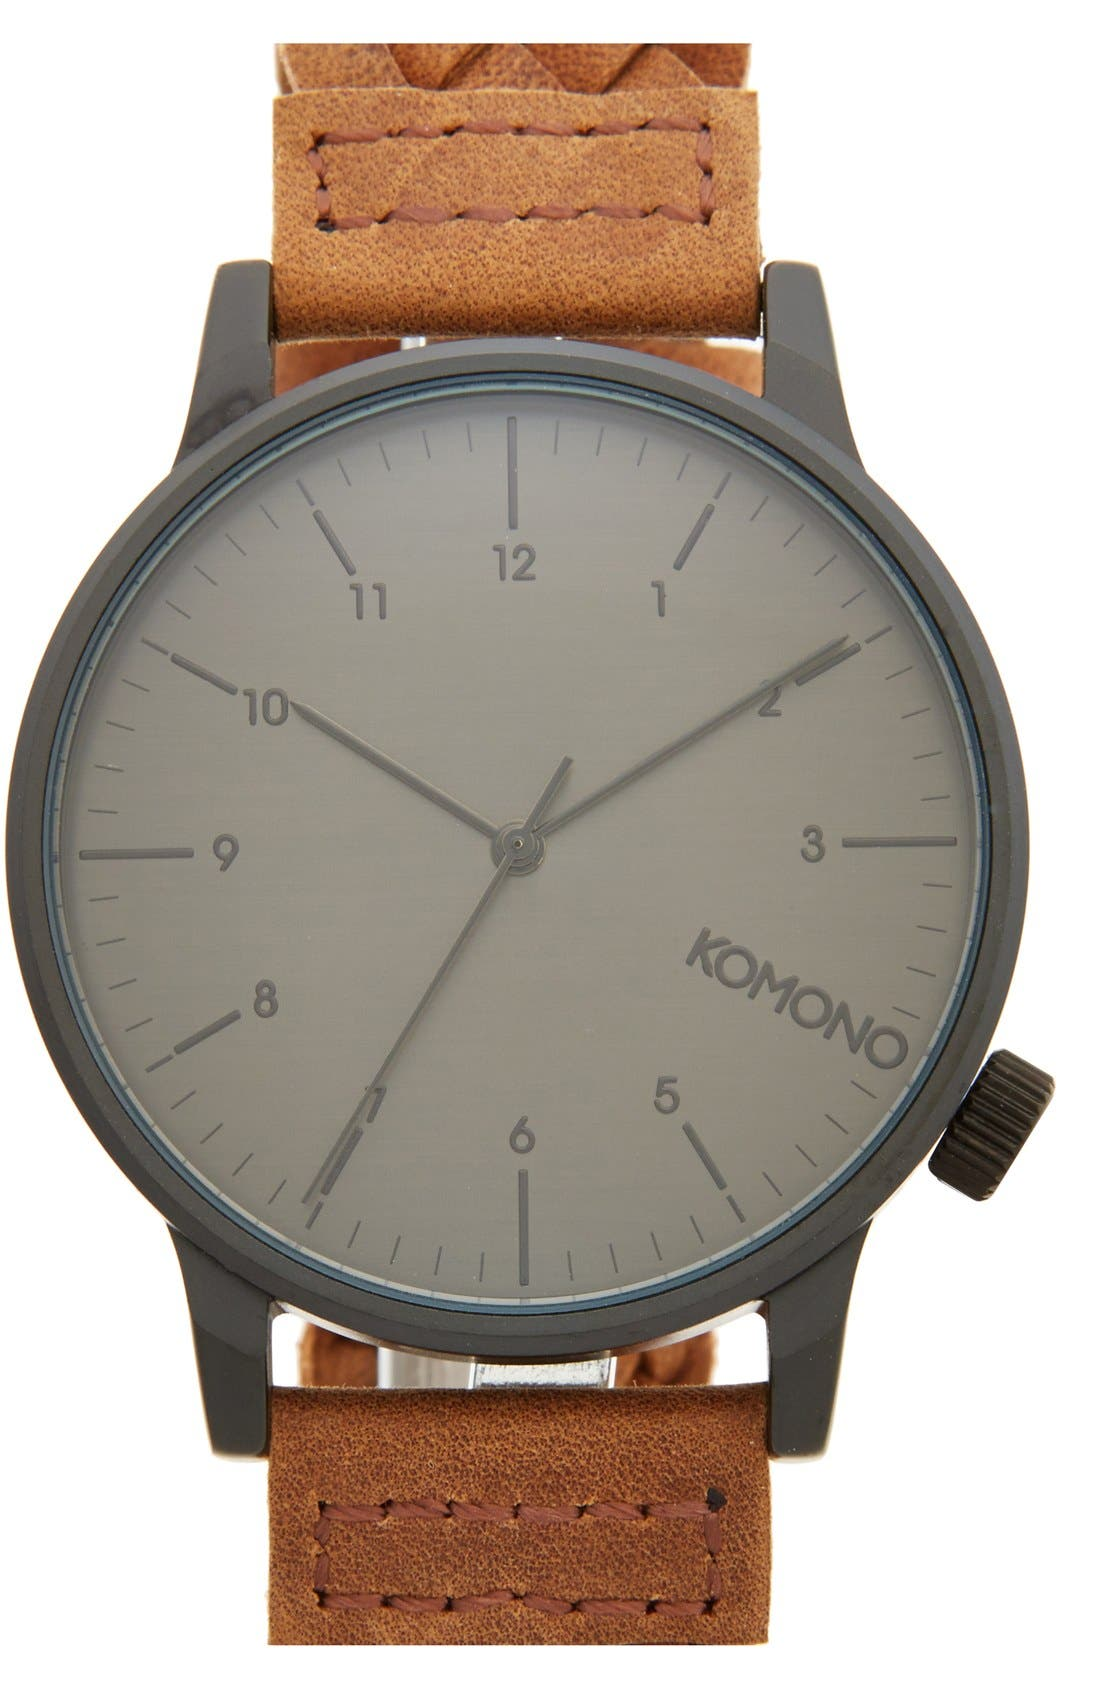 Komono 'Winston' Round Dial Woven Leather Strap Watch, 40mm